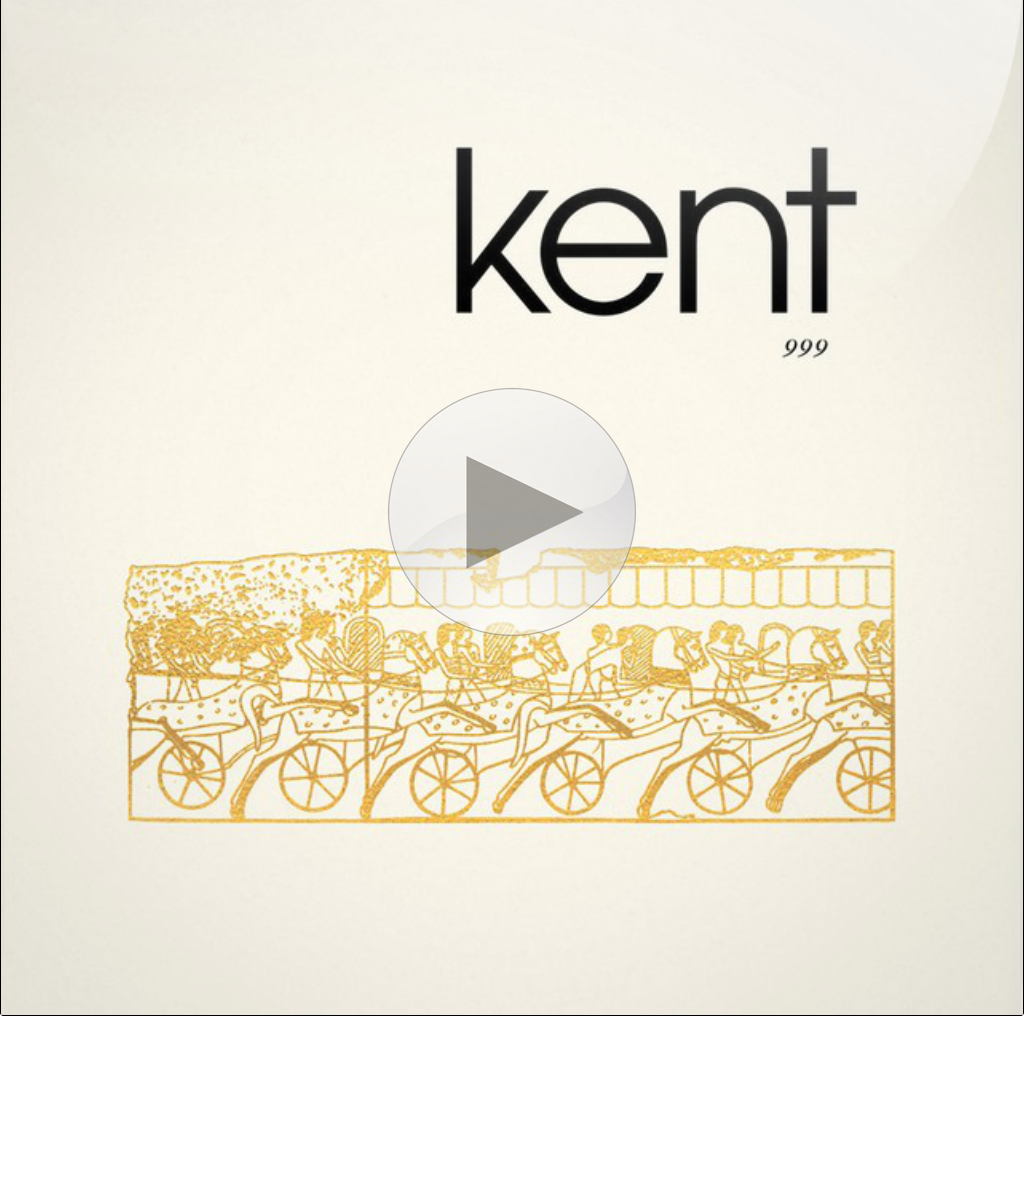 Listen to '999' by Kent @Spotify (via @Pinstamatic)